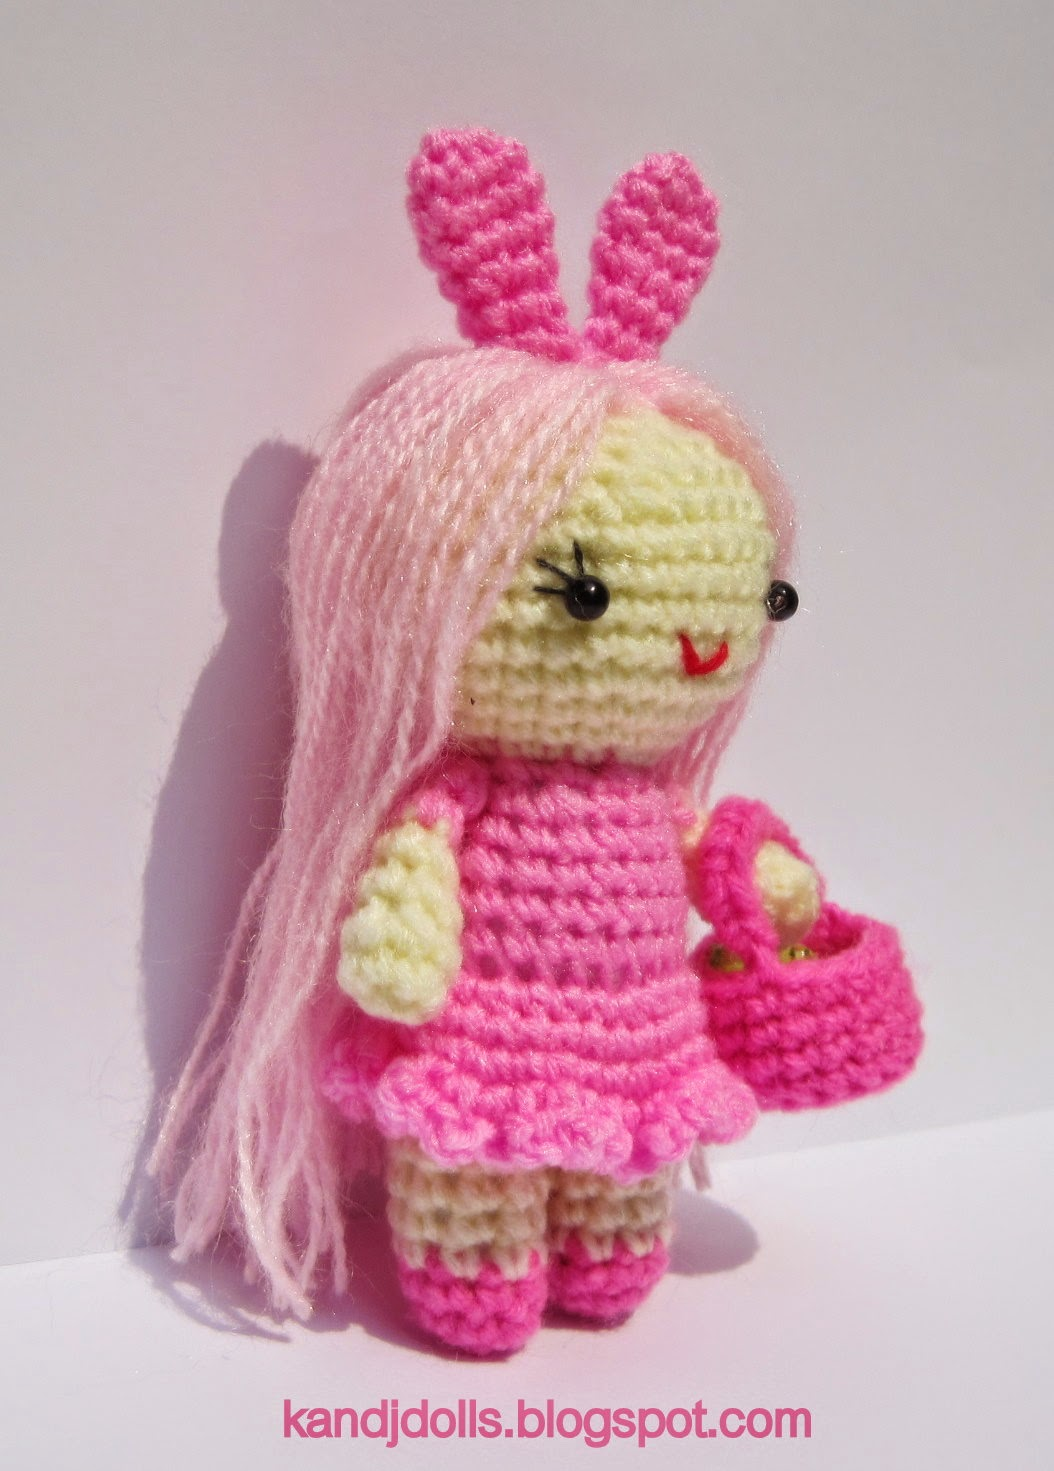 Amigurumi Human Doll Free Pattern : 2000 Free Amigurumi Patterns: Looking for Amigurumi Patterns